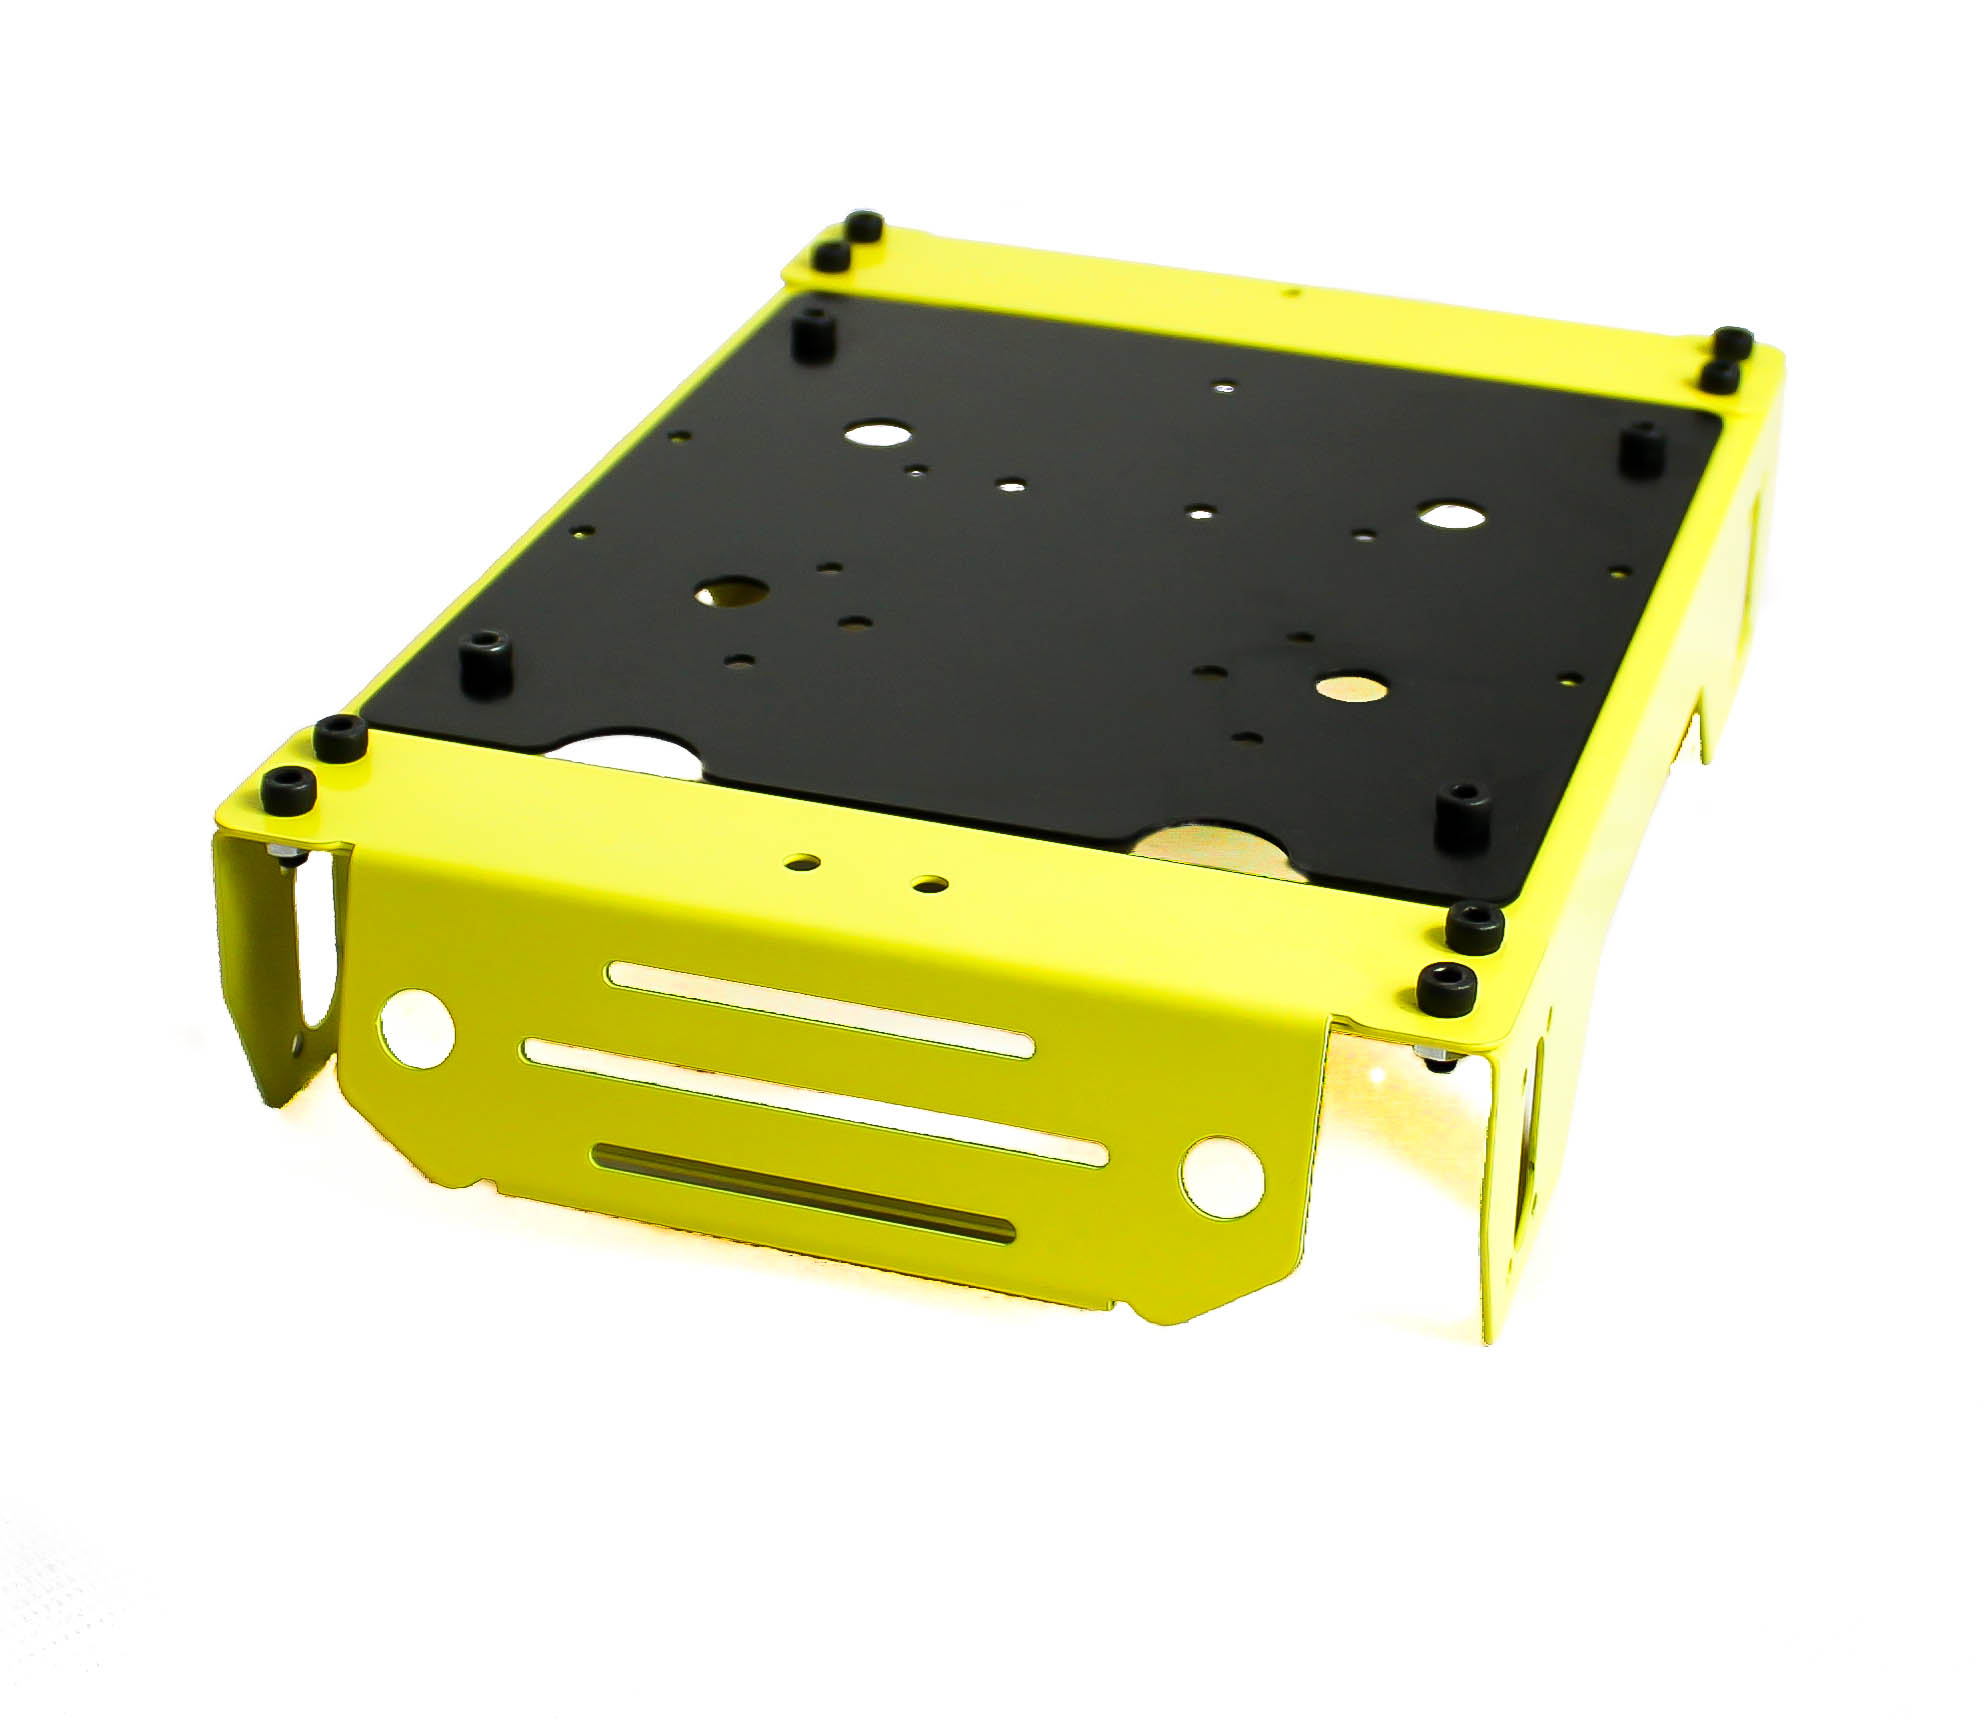 EasyMech Warrior Chassis